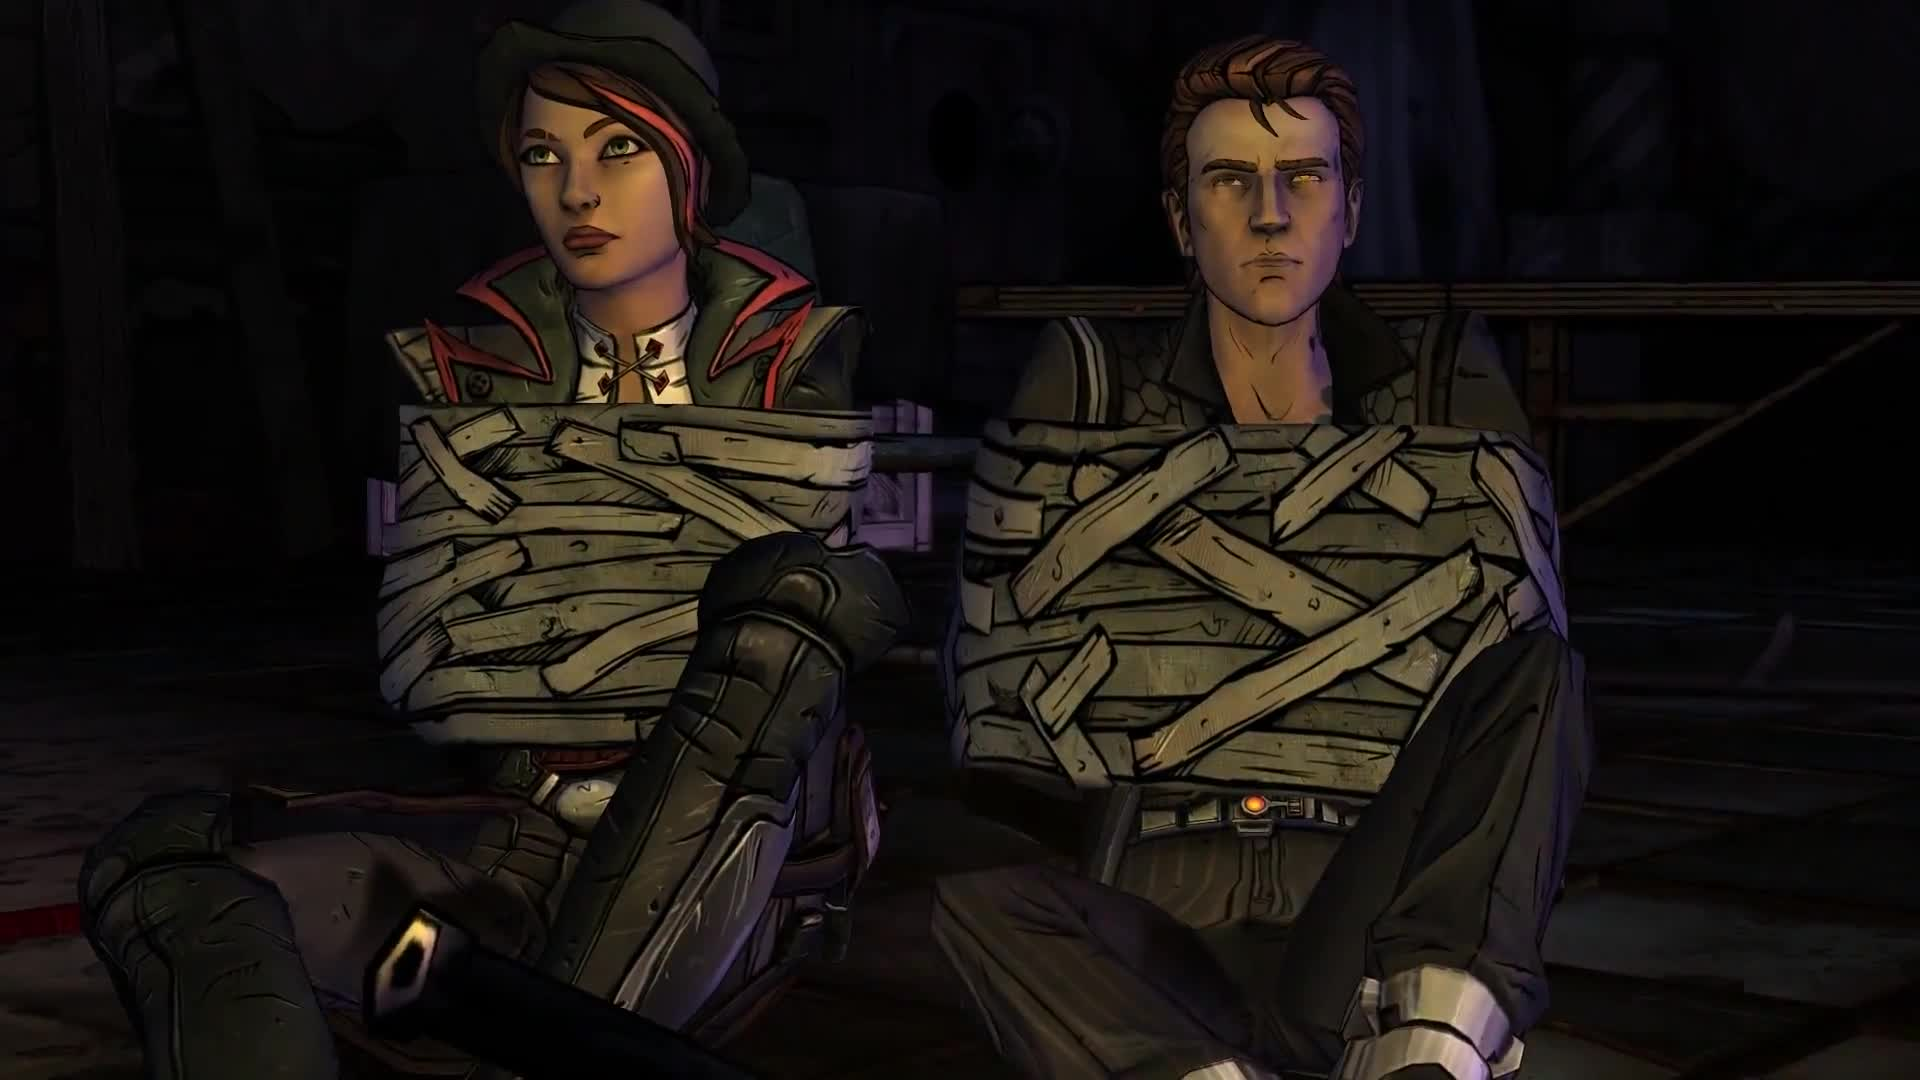 Tales from the Borderlands - Final Episode Trailer